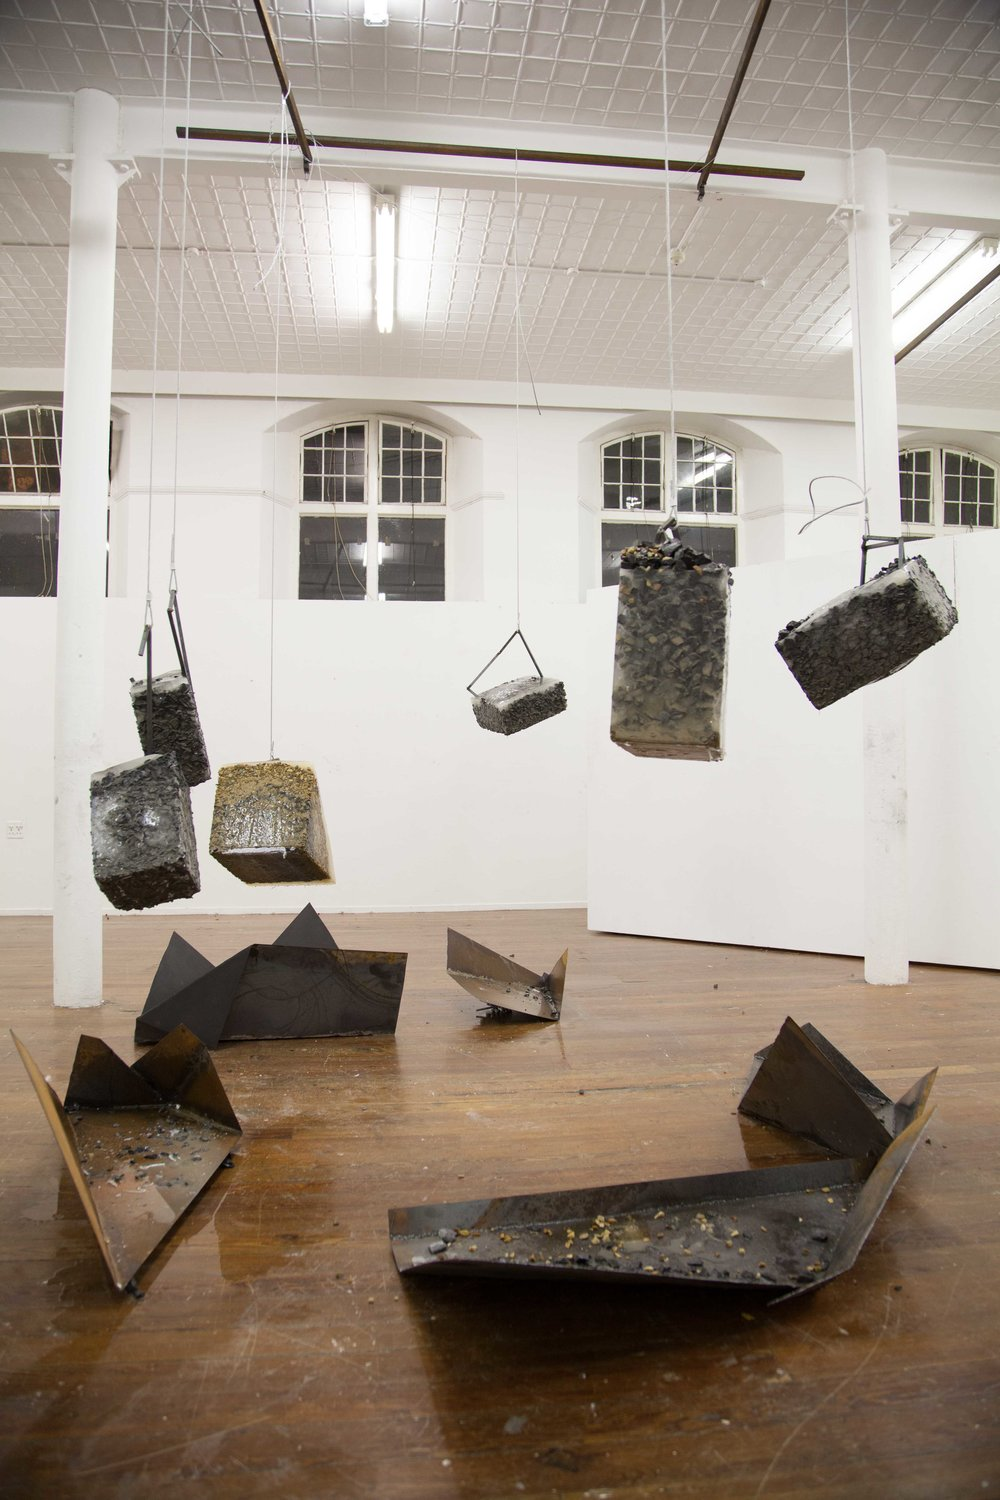 Construction Stasis: A proposal for Dystopia (installation view)